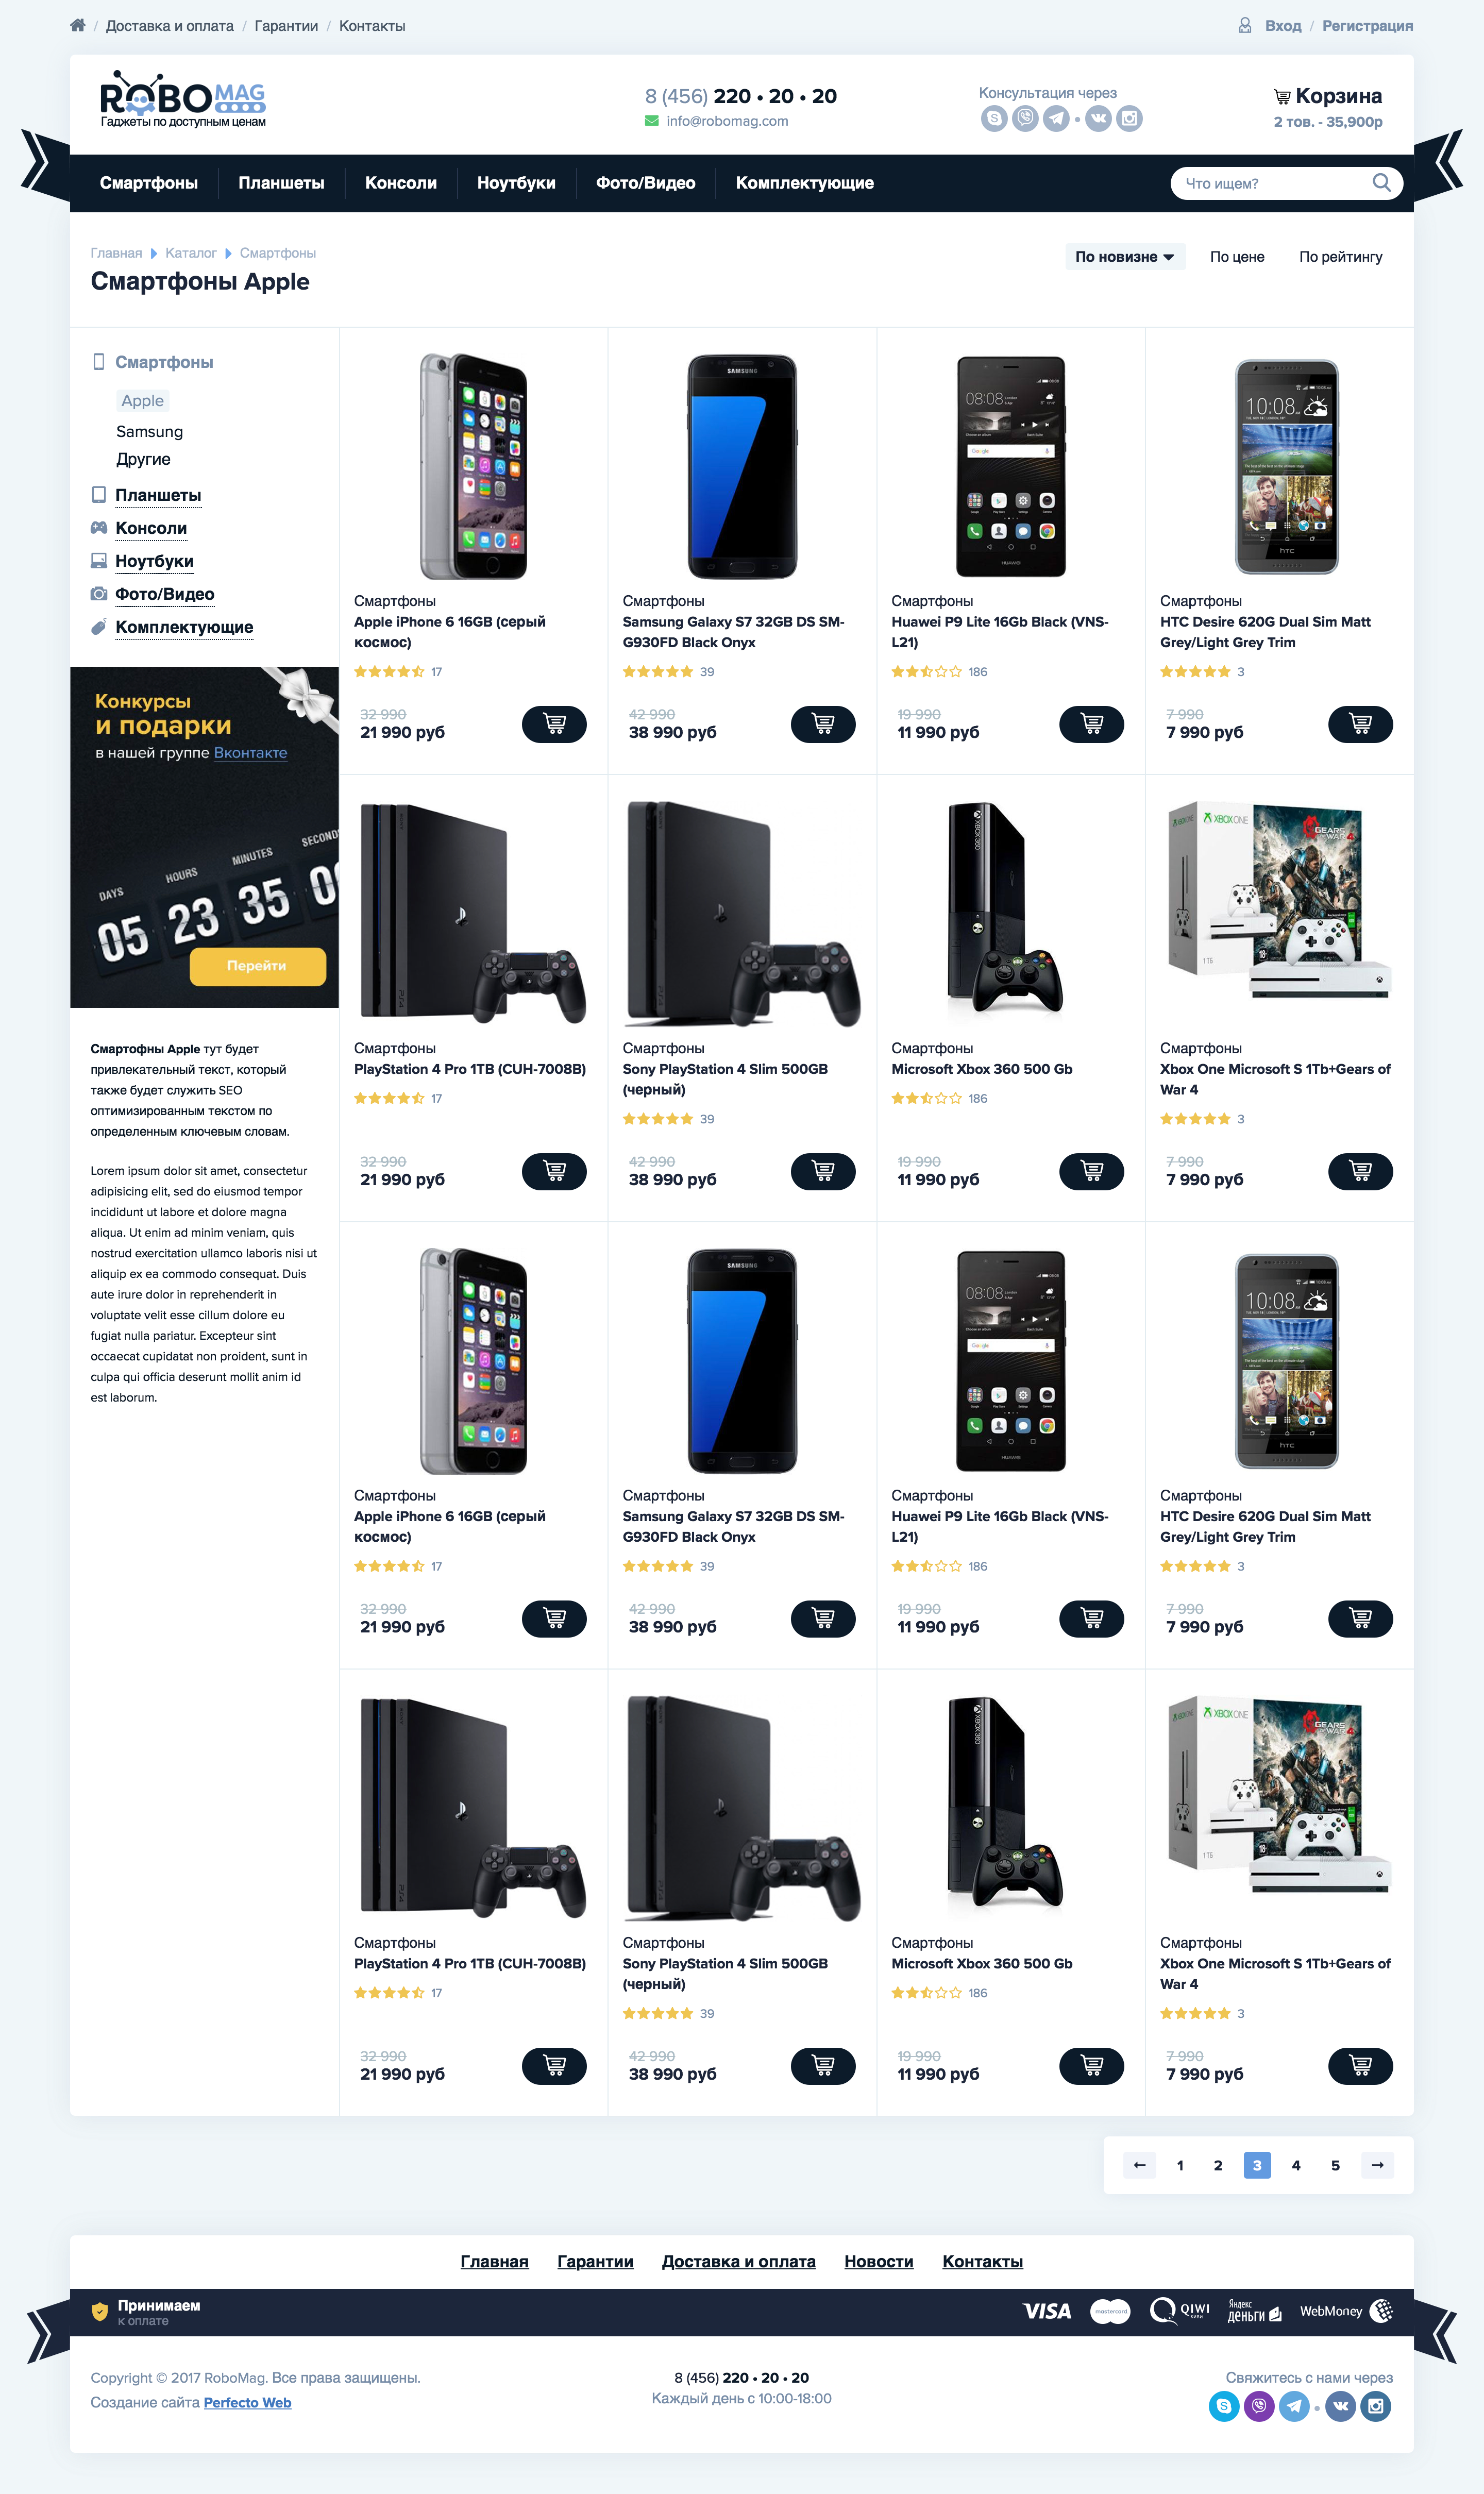 RoboMag - Buy Cool Gadgets - Catalog